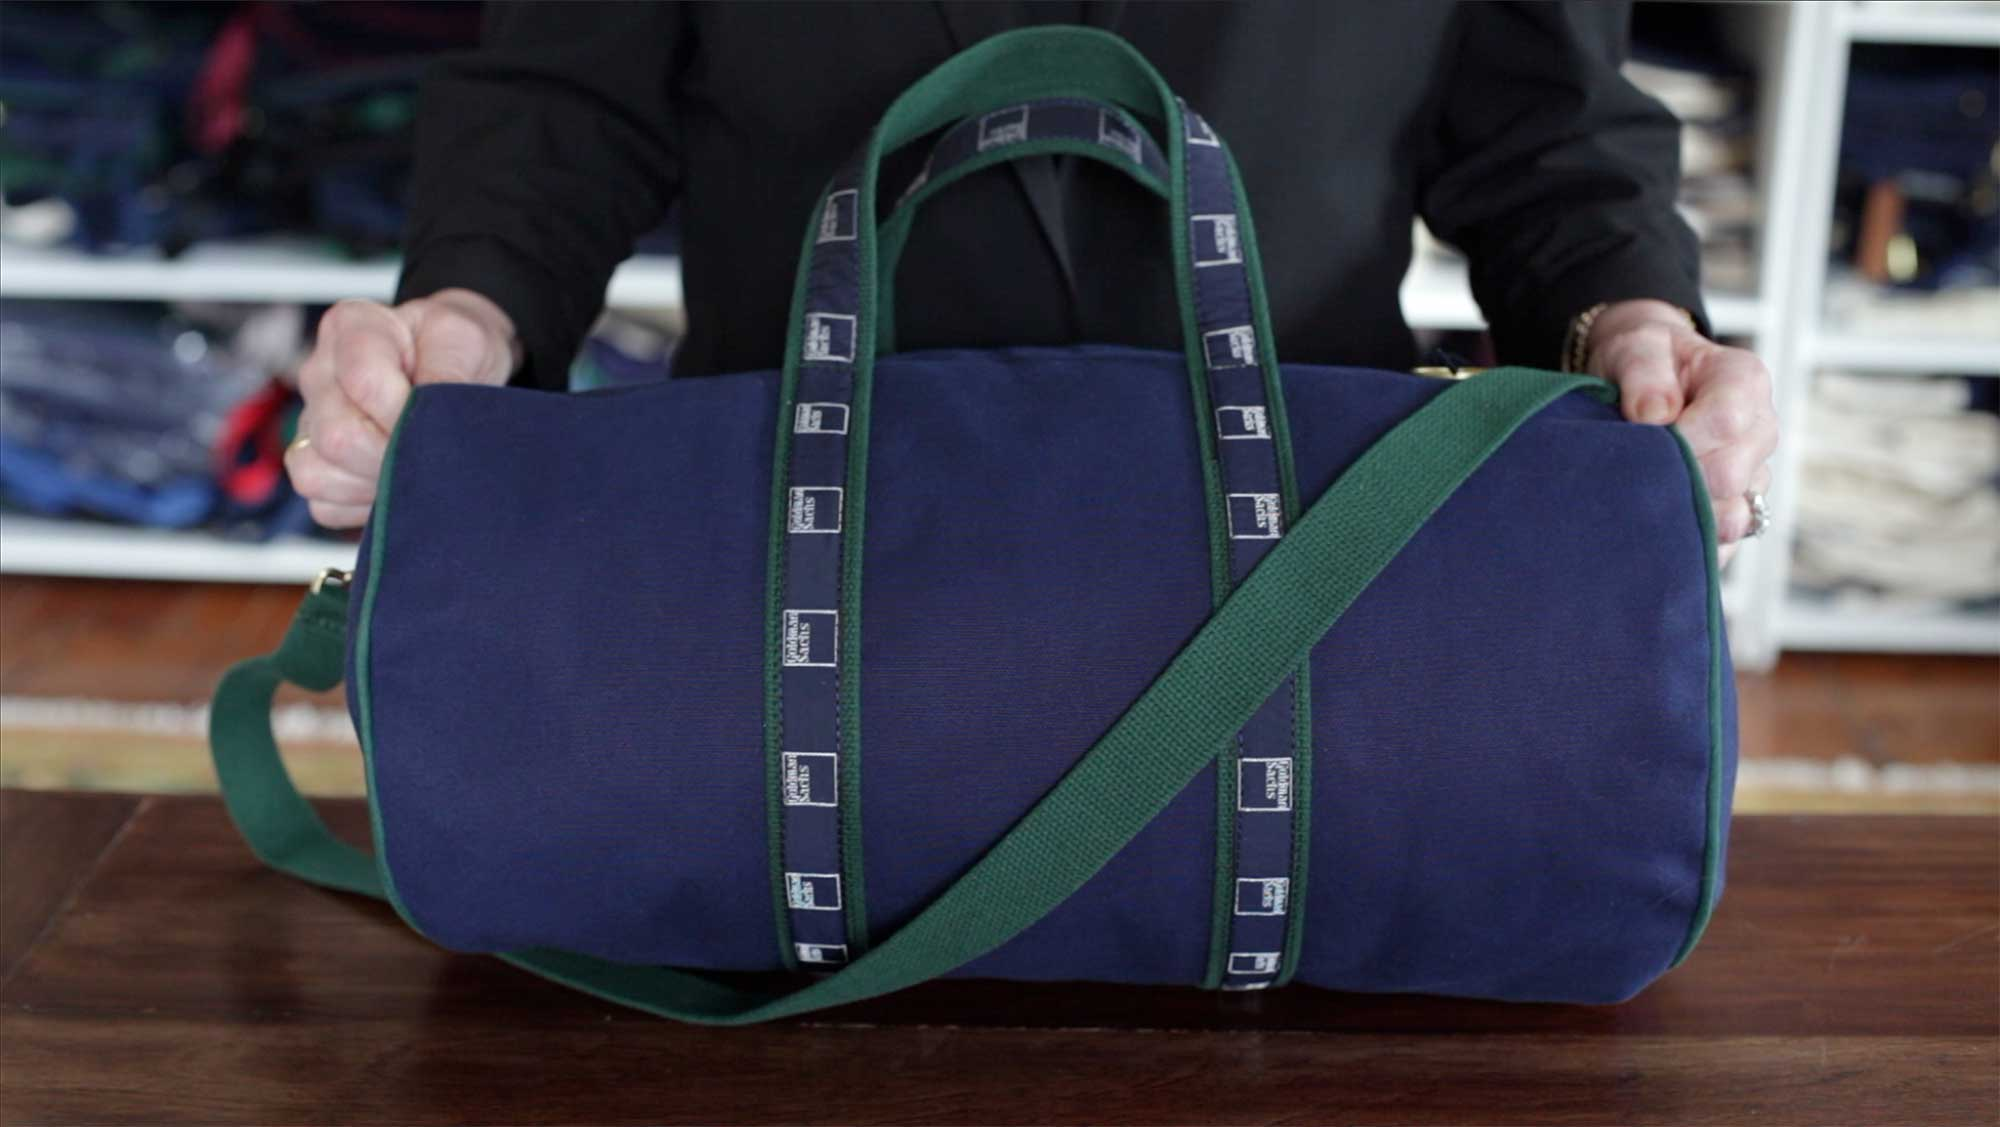 Banker Bag   There is only one original Wall Street Banker Bag   Warden  Brooks bd97905b30